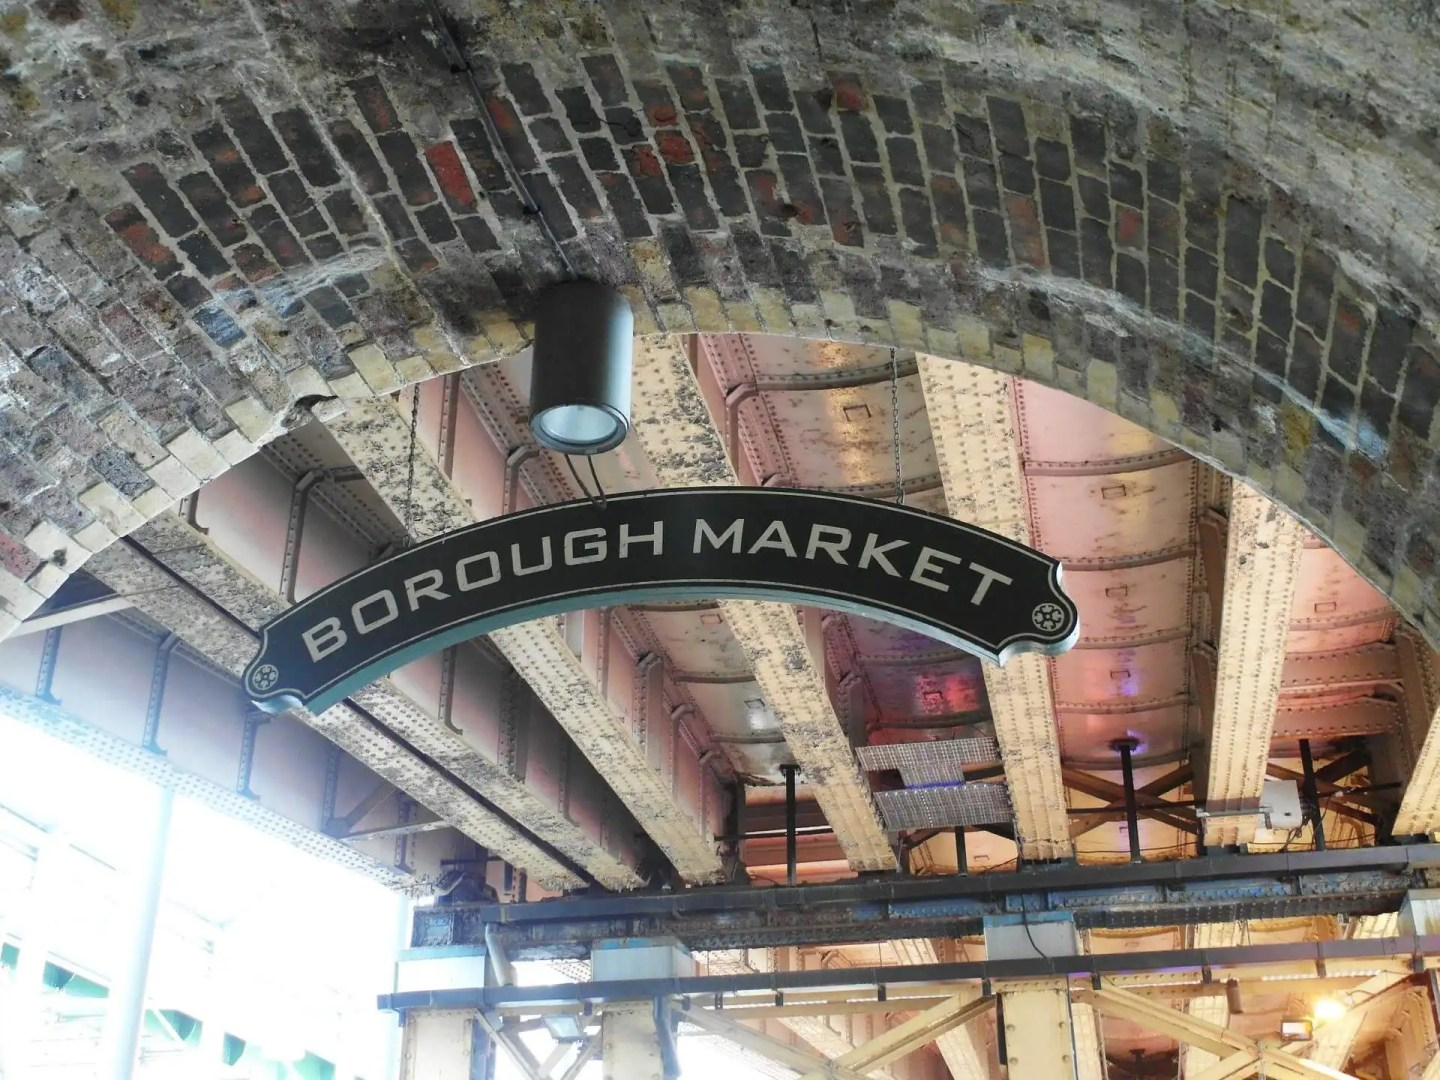 Borough Market in London United Kingdom